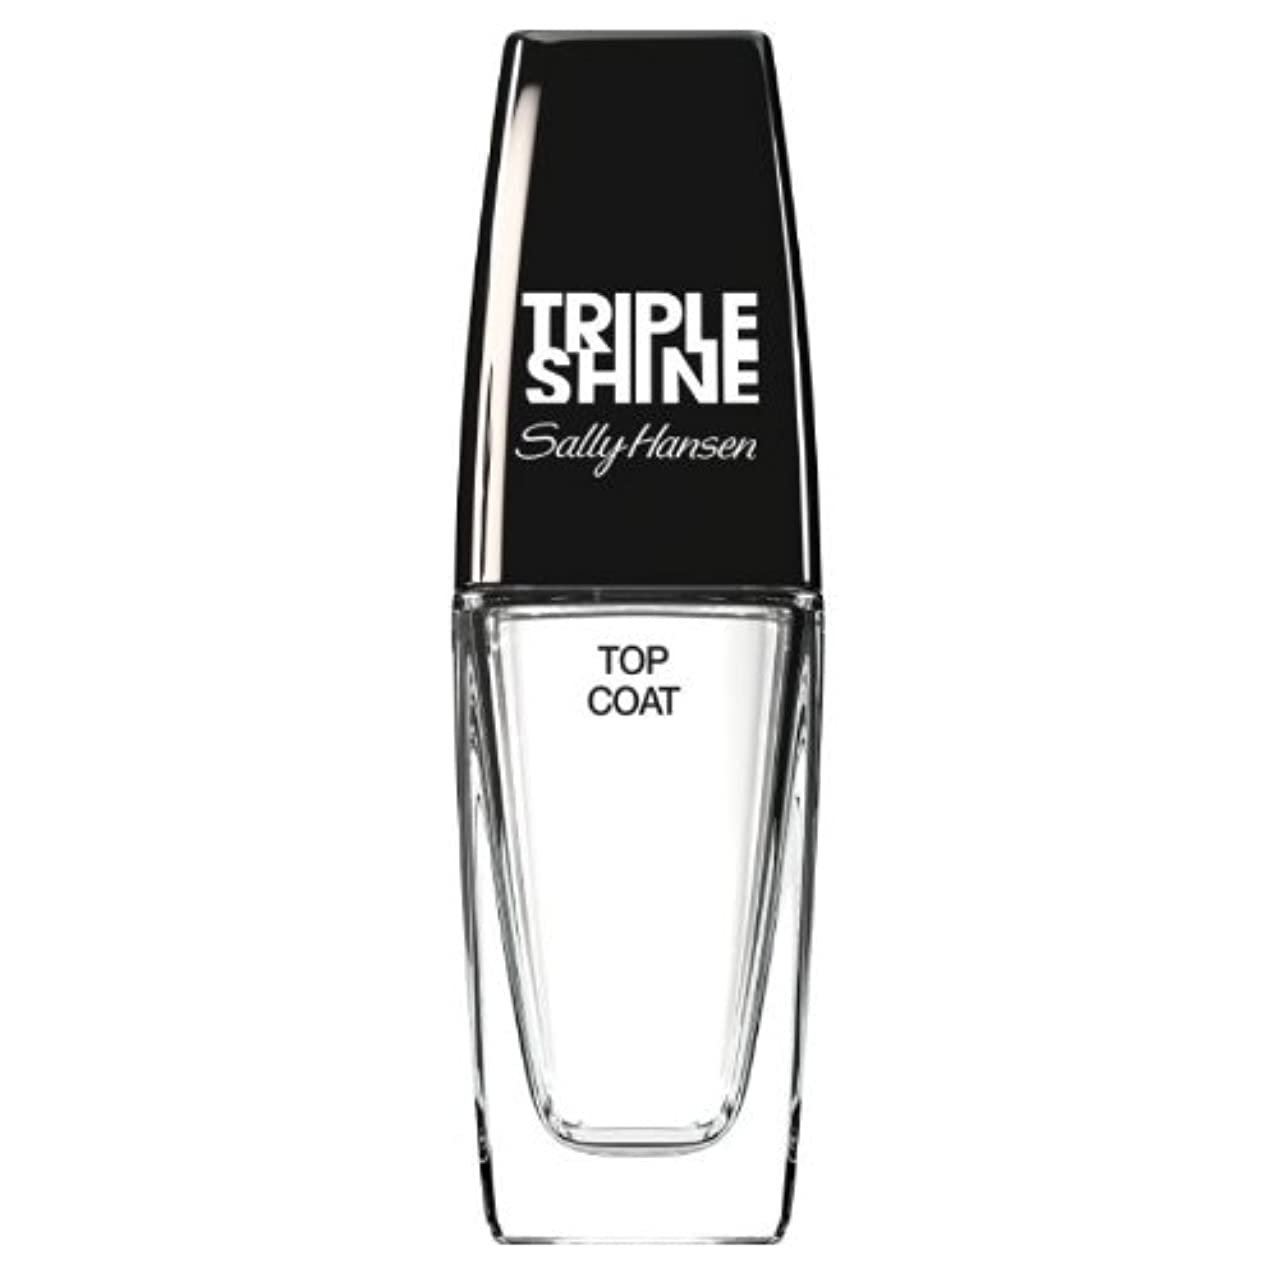 非常に怒っていますオフの面では(6 Pack) SALLY HANSEN Triple Shine Top Coat - Triple Shine Top Coat (並行輸入品)